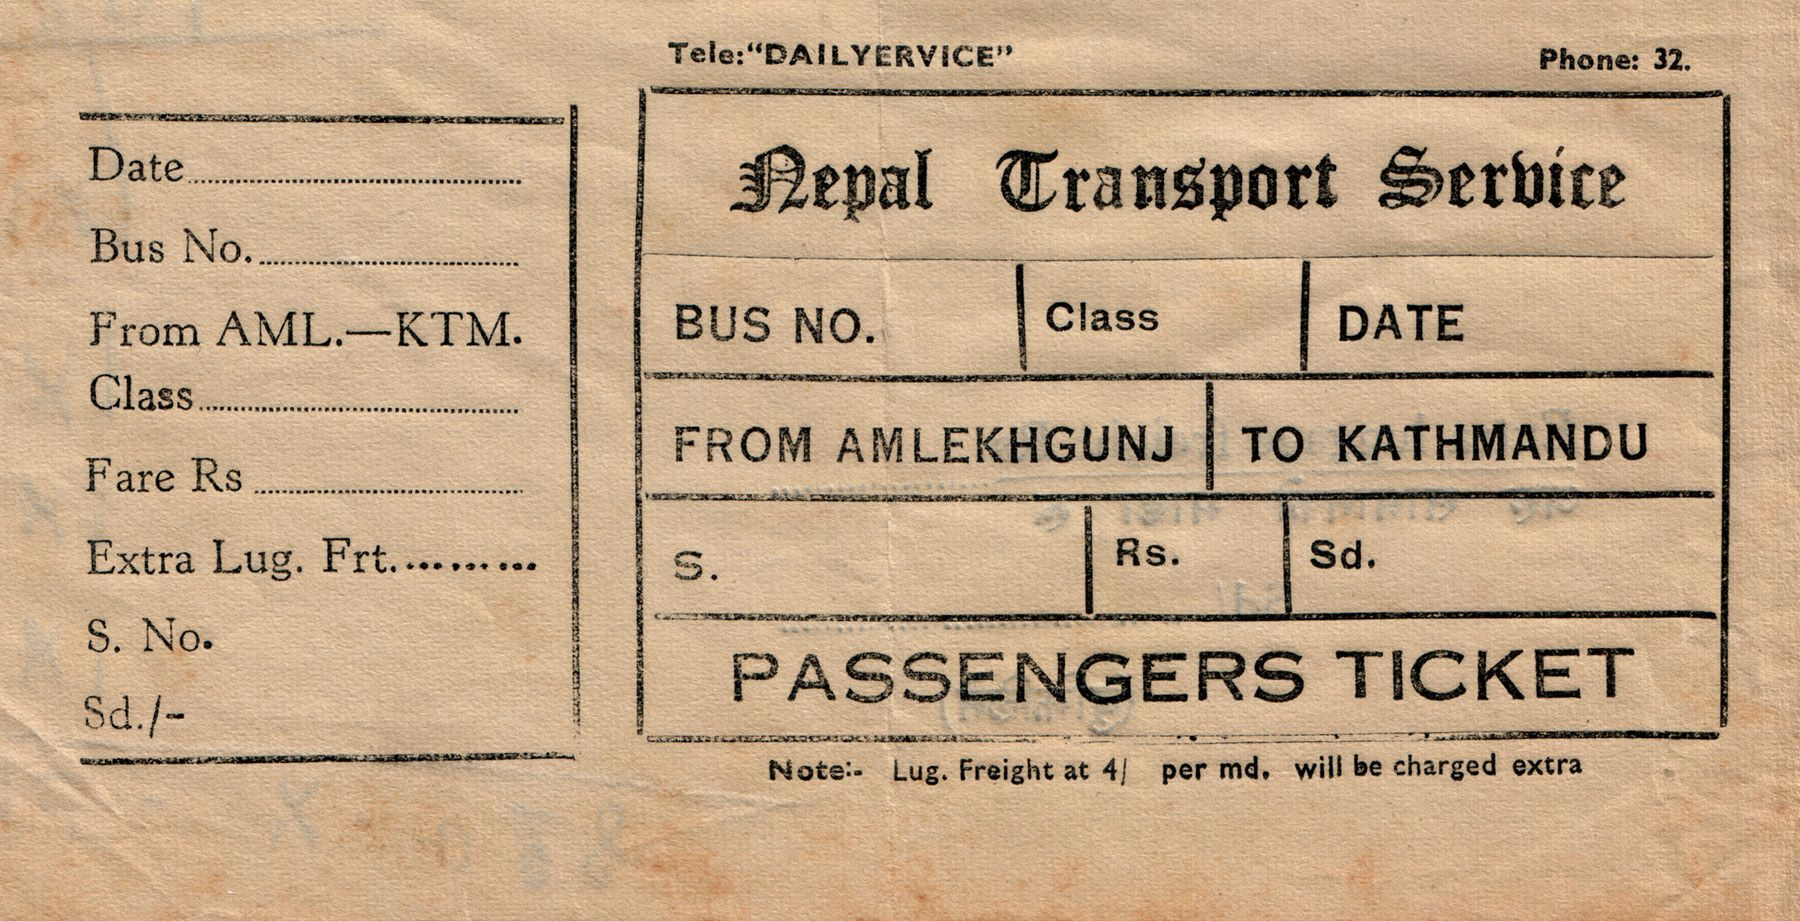 bus ticket of nepal transport service